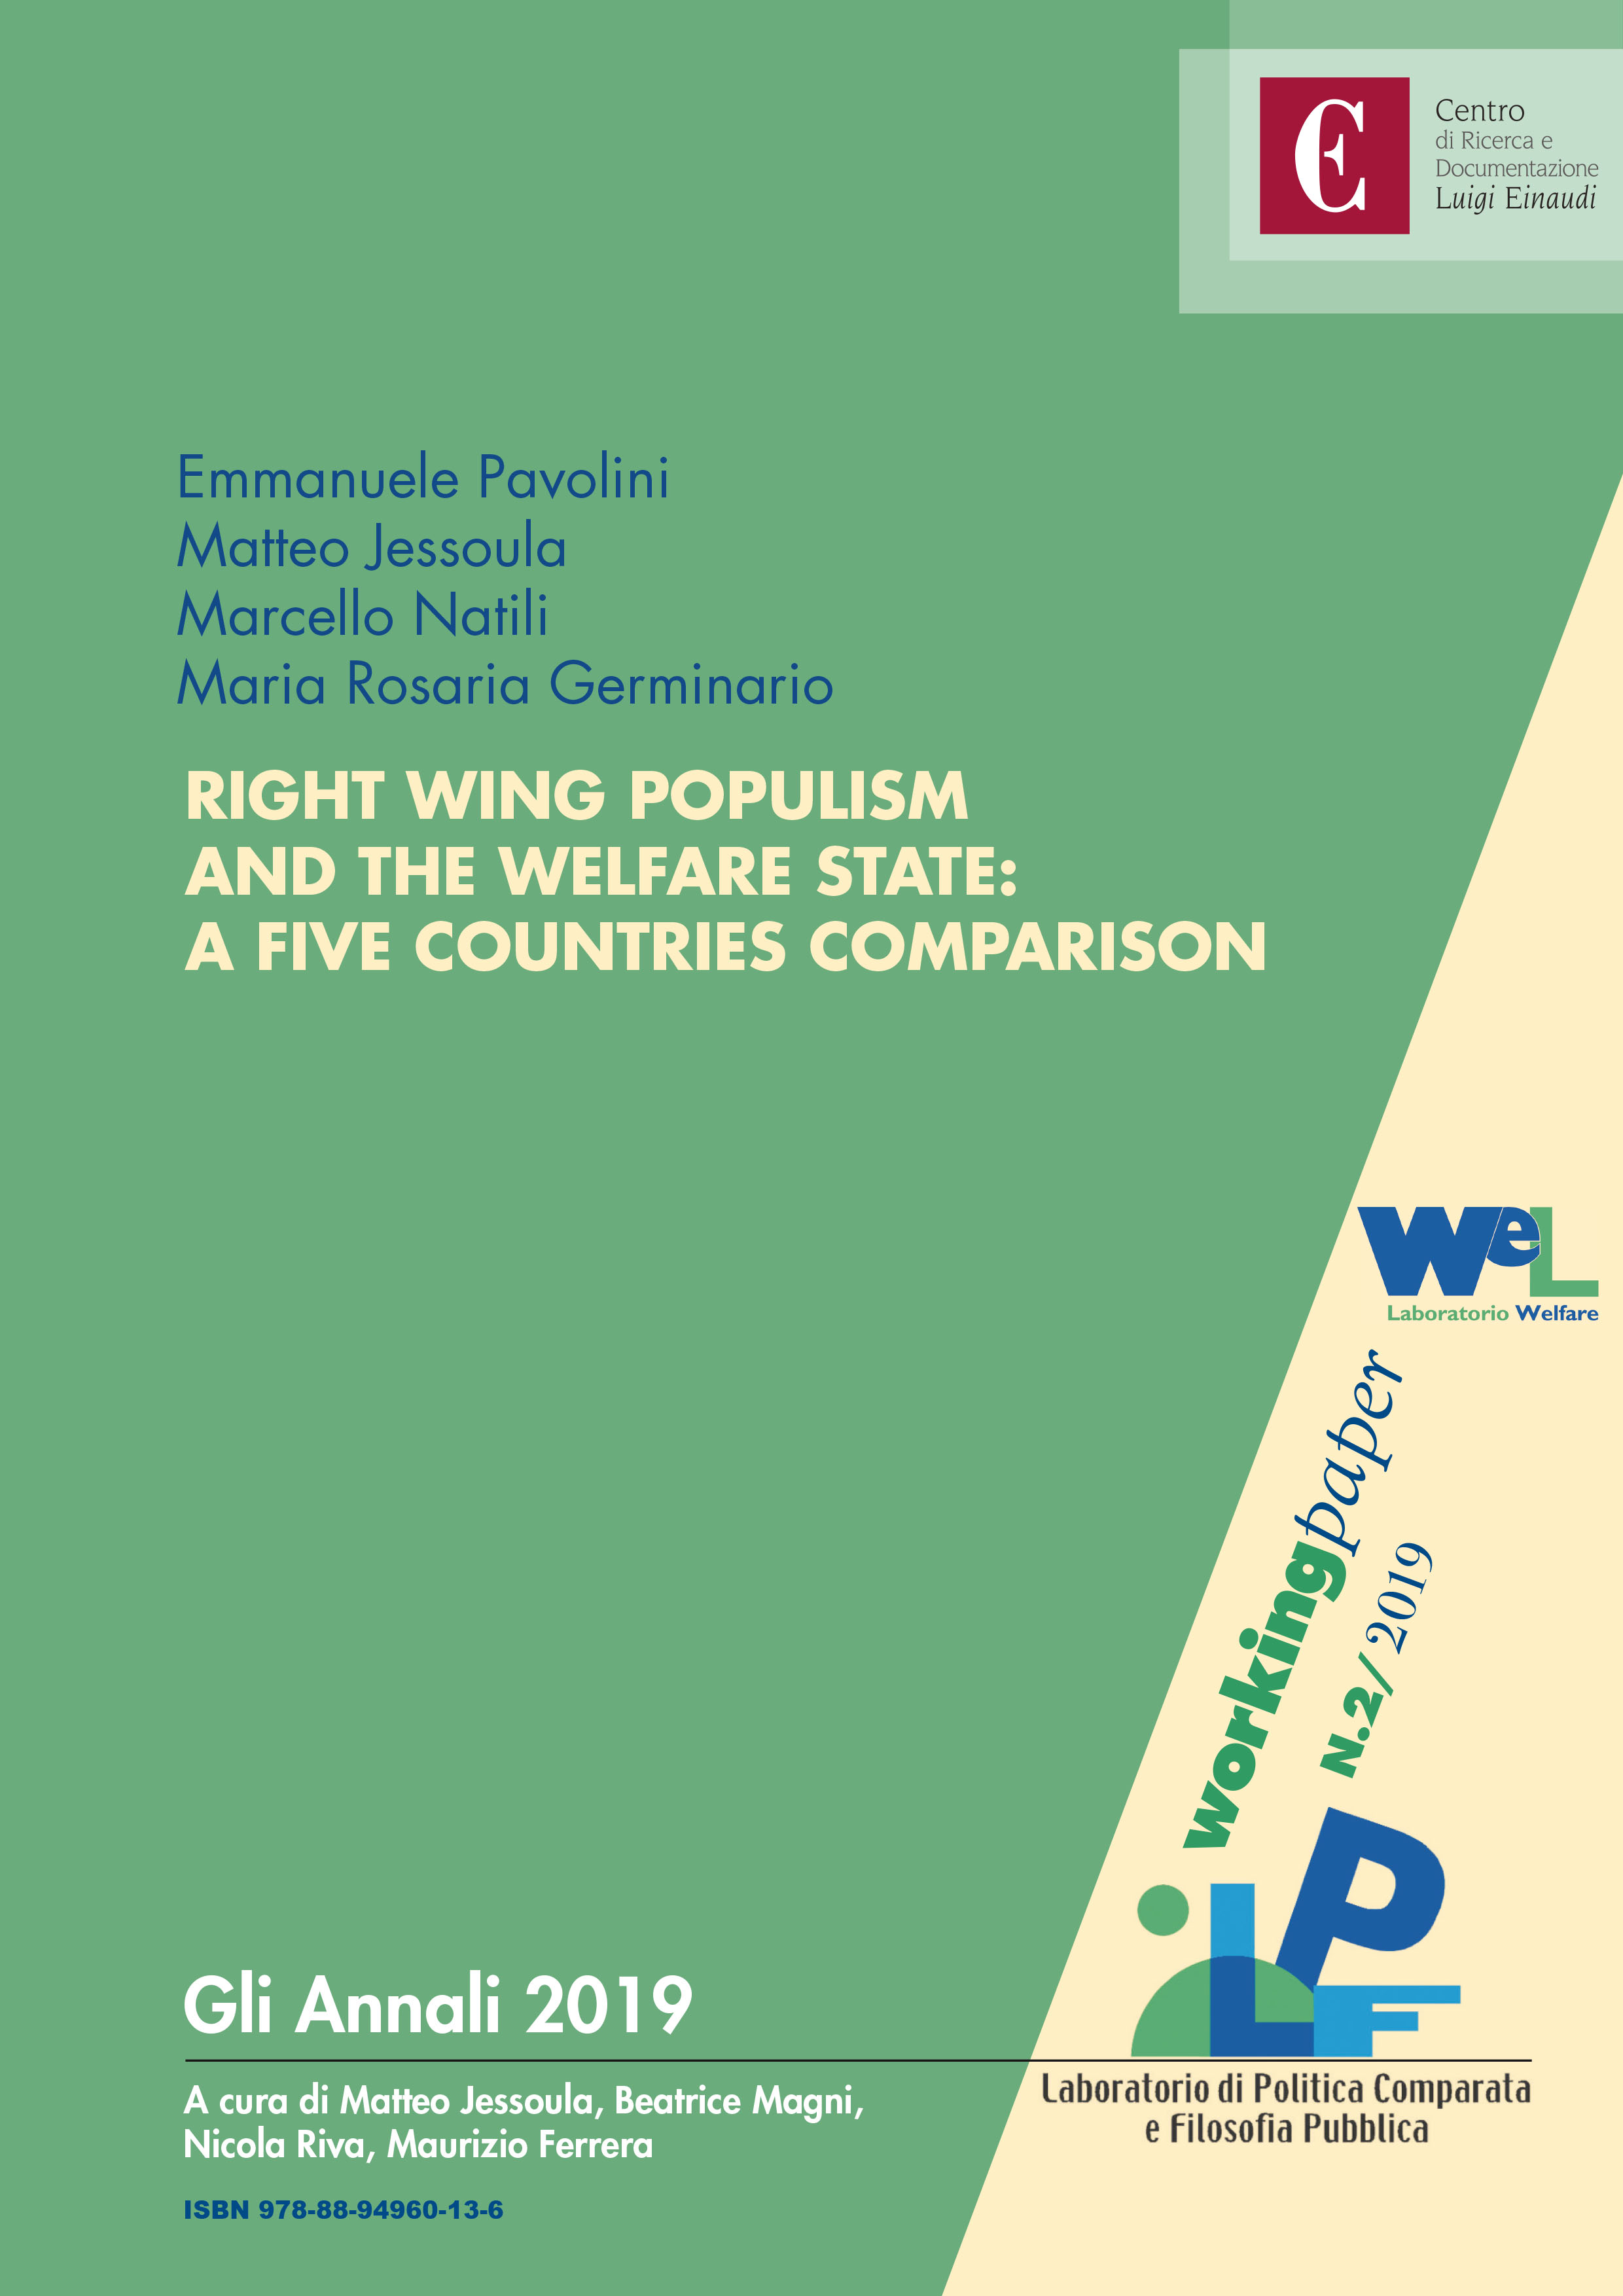 Right Wing Populism and the Welfare State: a Five Countries Comparison